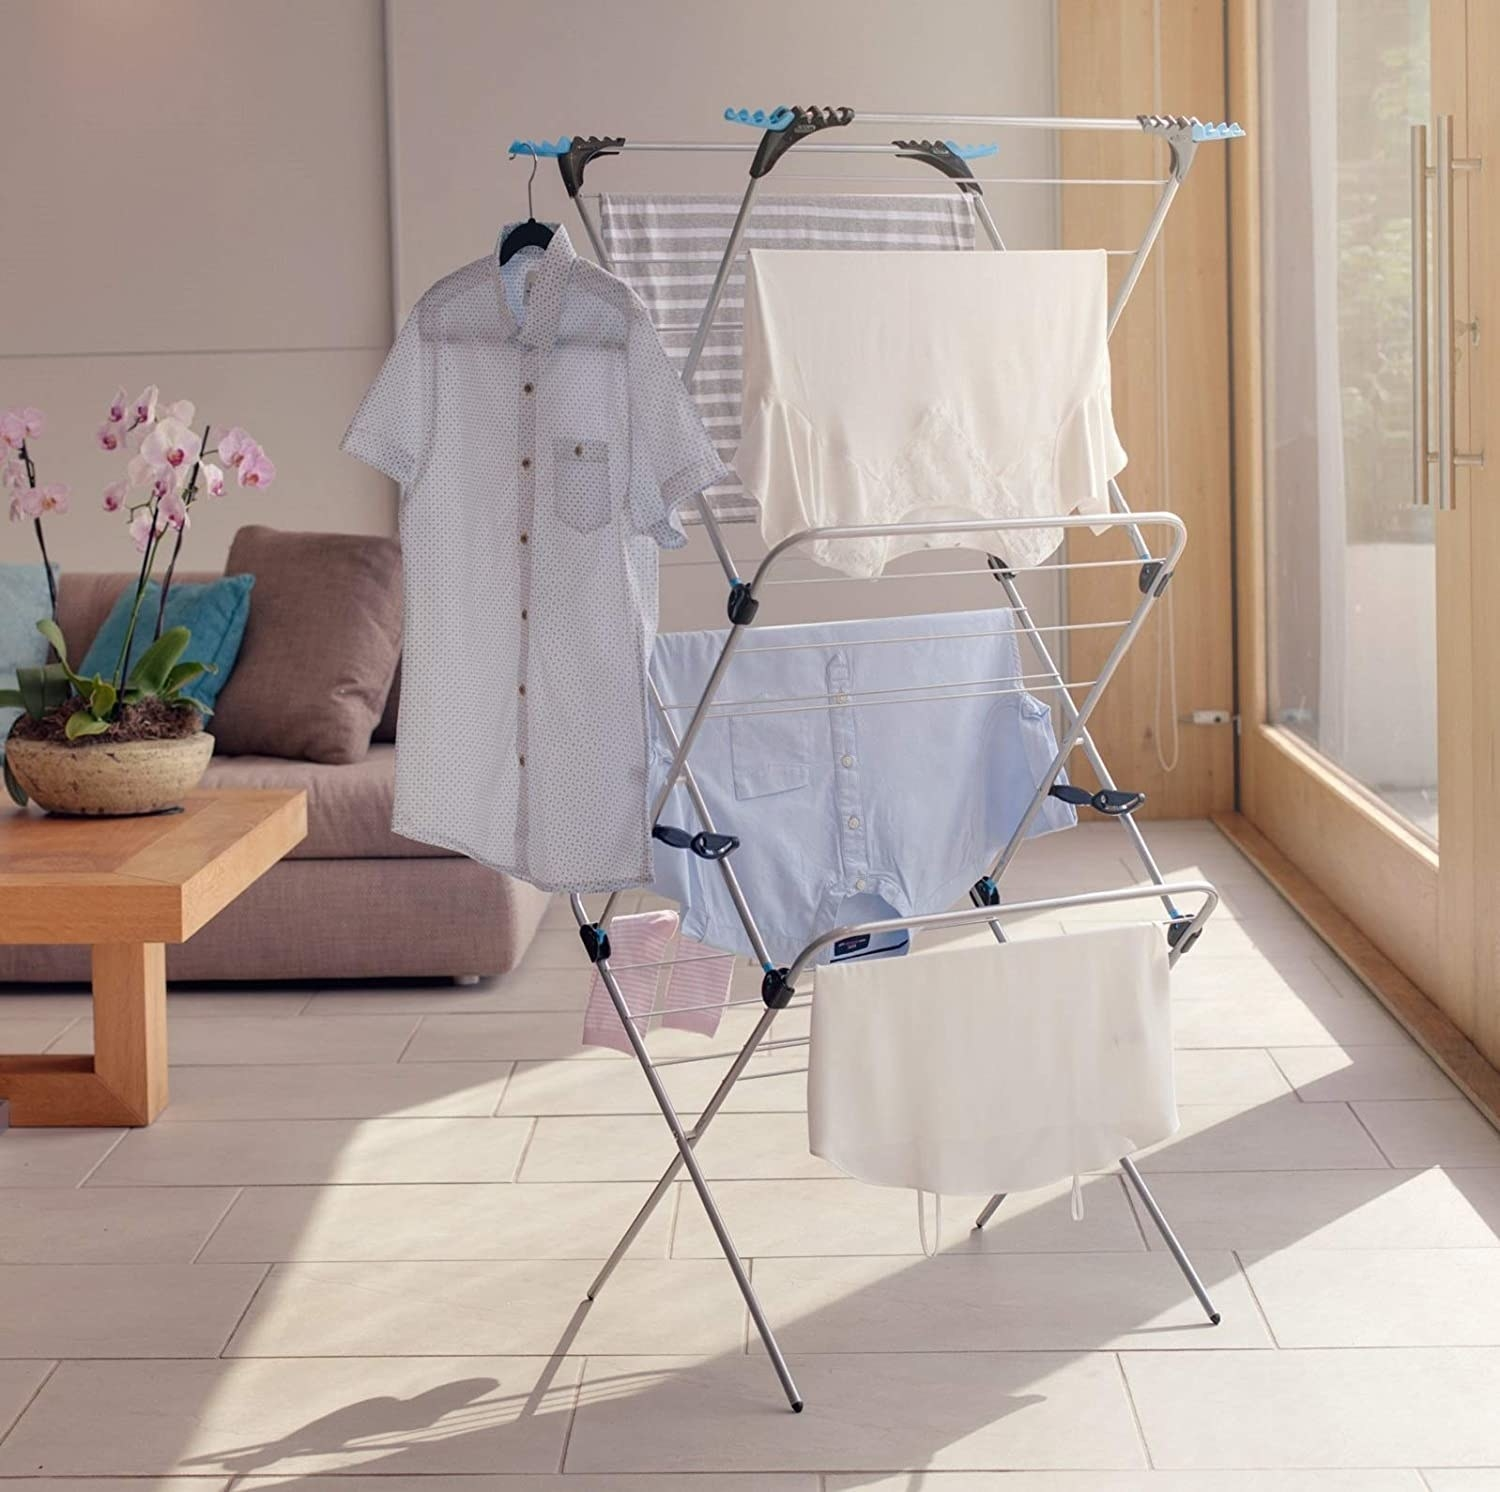 Three-tiered drying rack with clothes hanging on it in living room